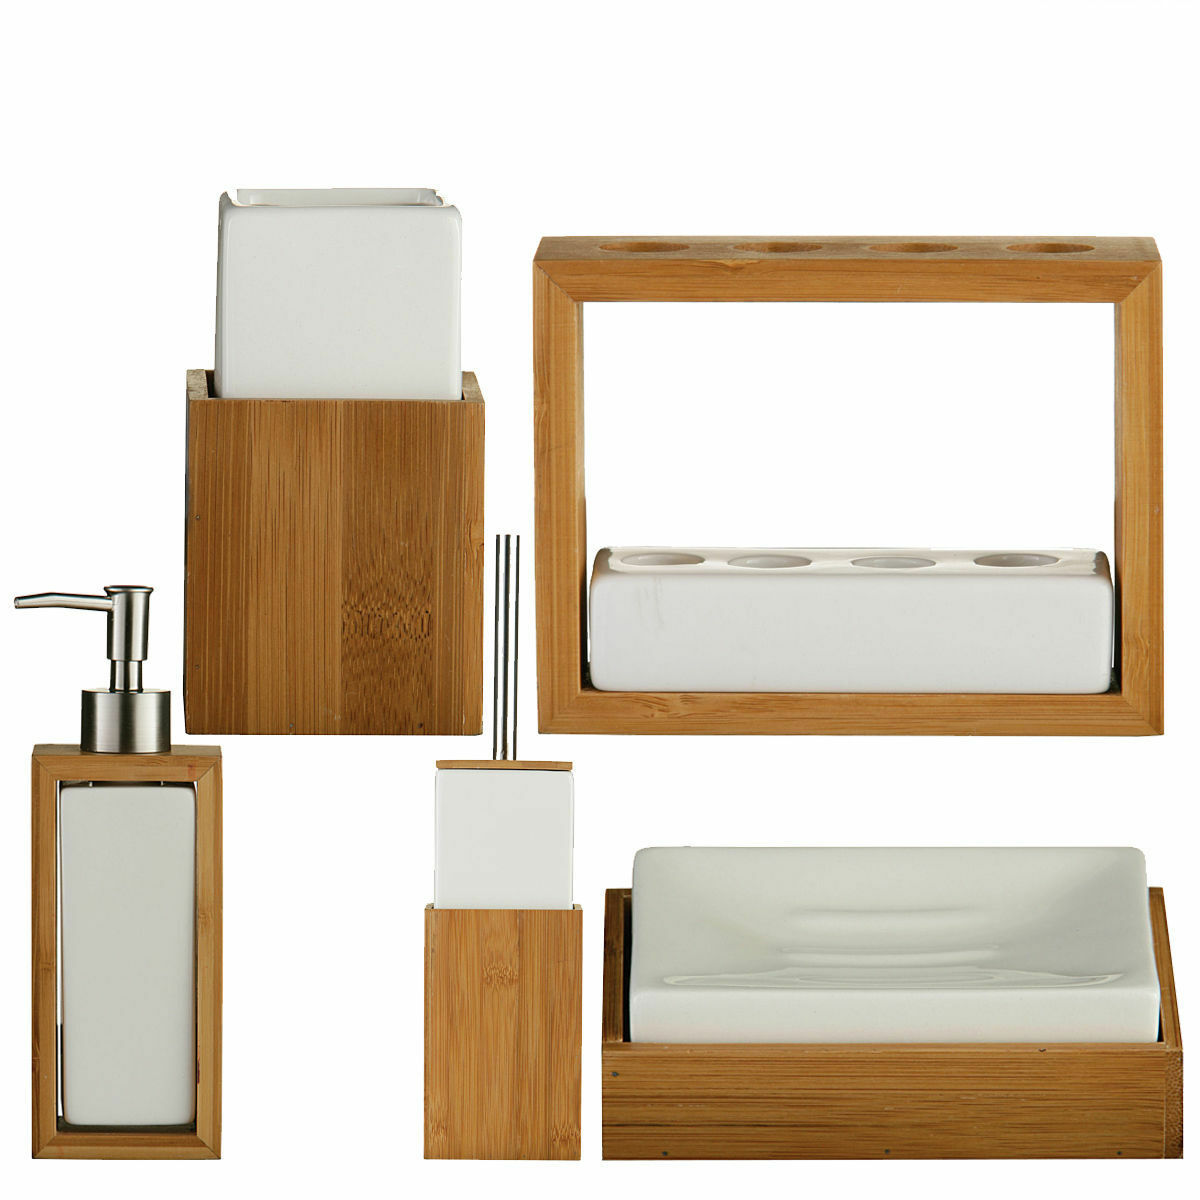 White Ceramic Wooden Bamboo Sink Bathroom Accessories Set